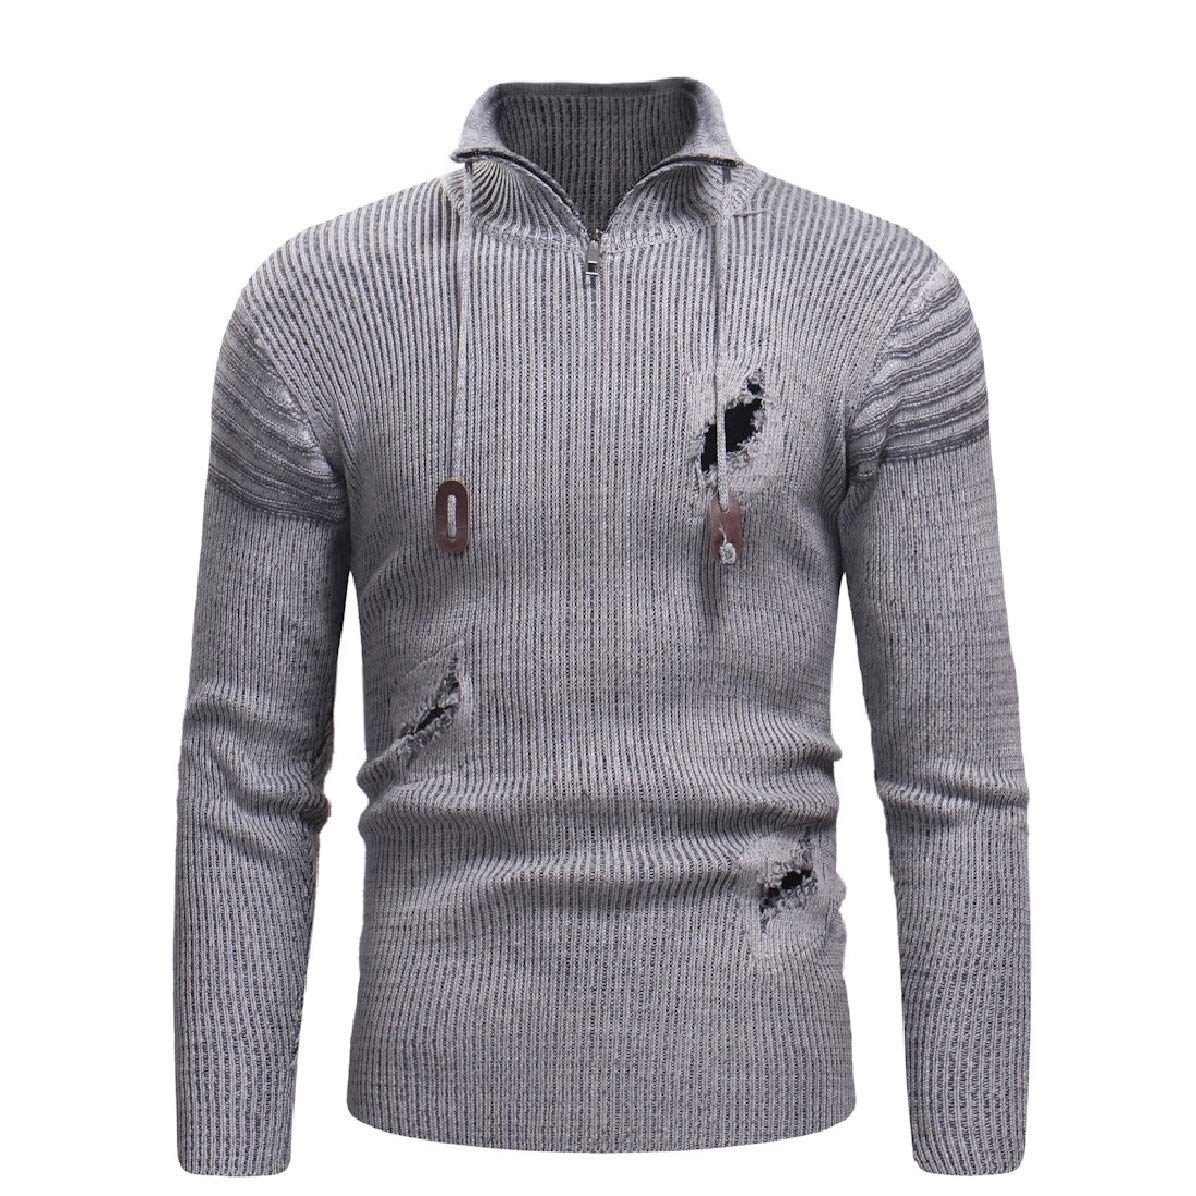 Zimaes-Men Fall Winter Knit Long-Sleeve Ripped Distressed Pullover Zipper Sweaters